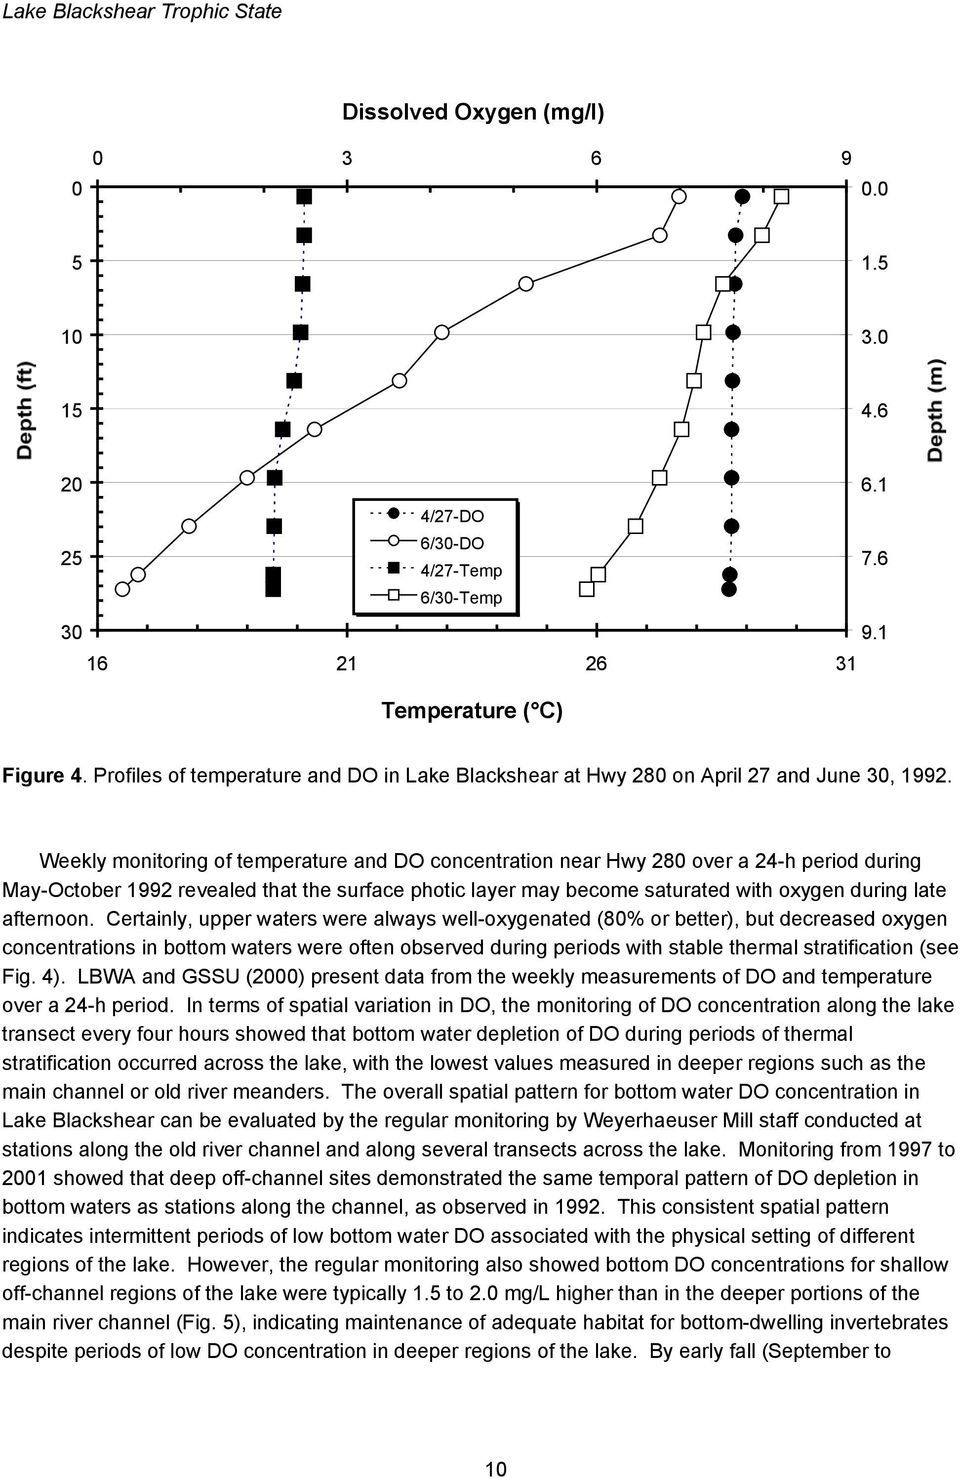 Weekly monitoring of temperature and DO concentration near Hwy 280 over a 24-h period during May-October 1992 revealed that the surface photic layer may become saturated with oxygen during late